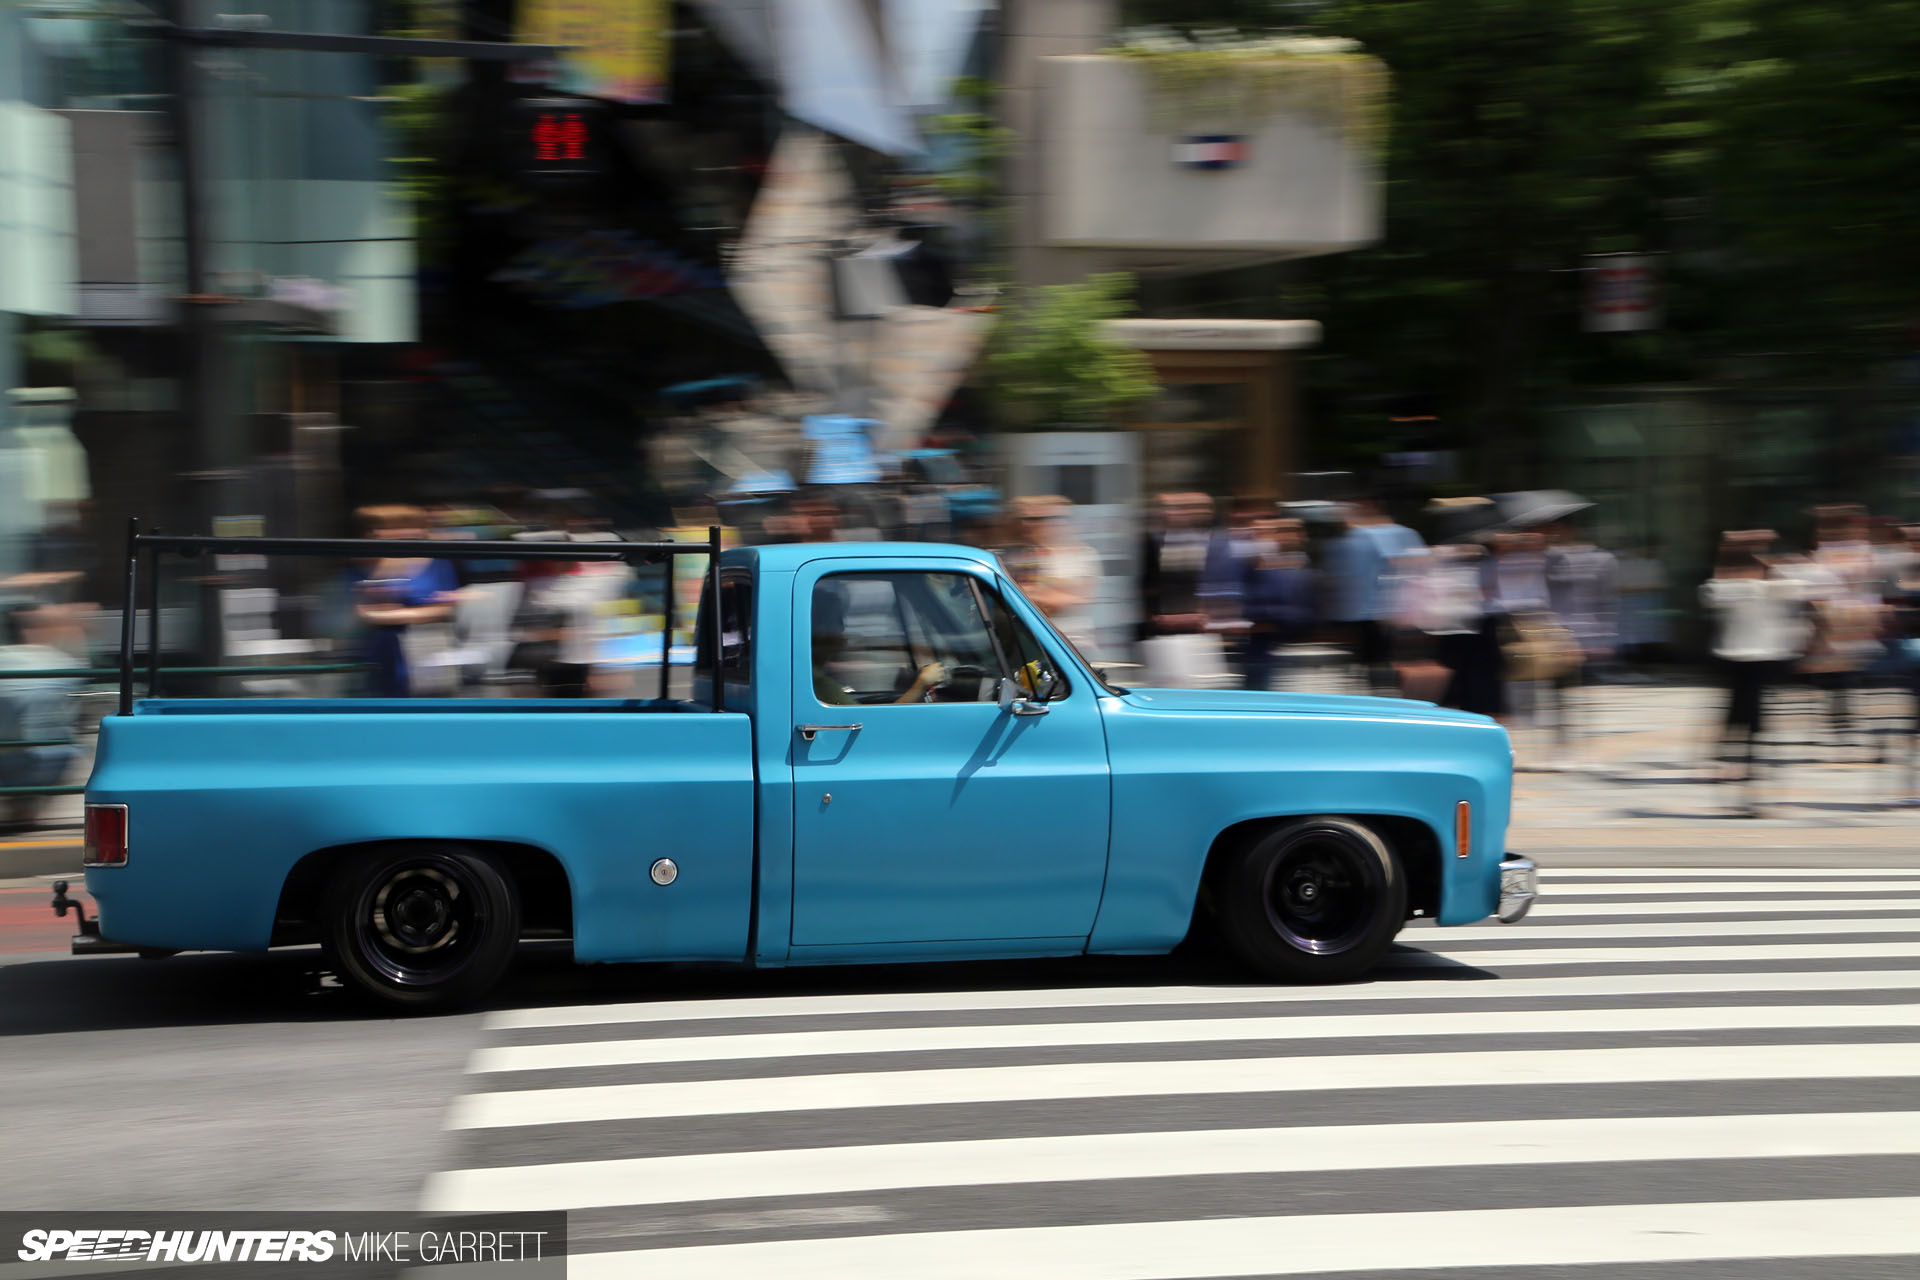 The Shakotan Gmc Pickup Speedhunters